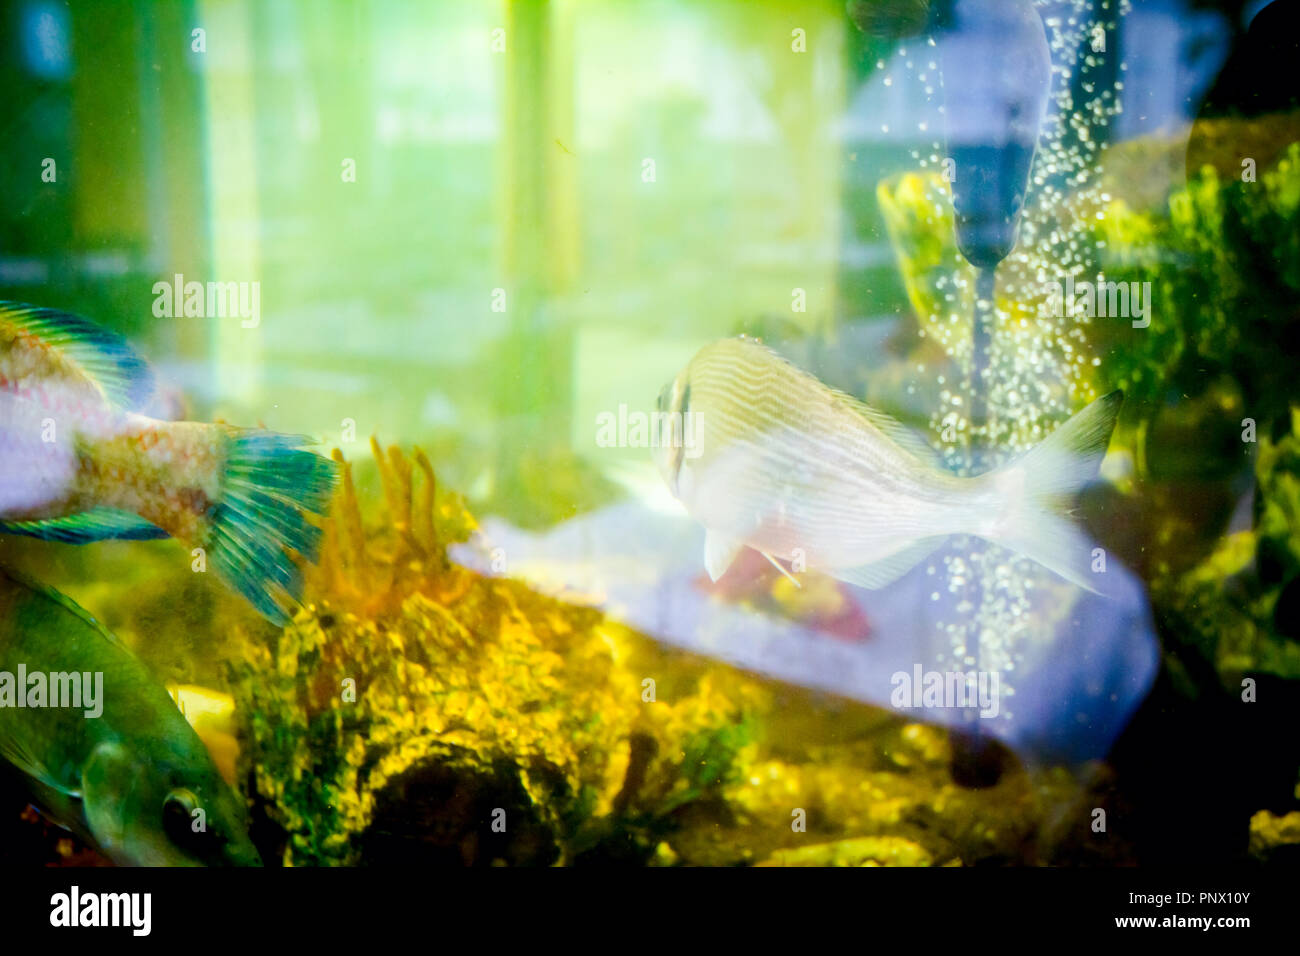 Live various fishes are in aquarium, tank at traditional seafood restaurant for sale, sea shells. - Stock Image